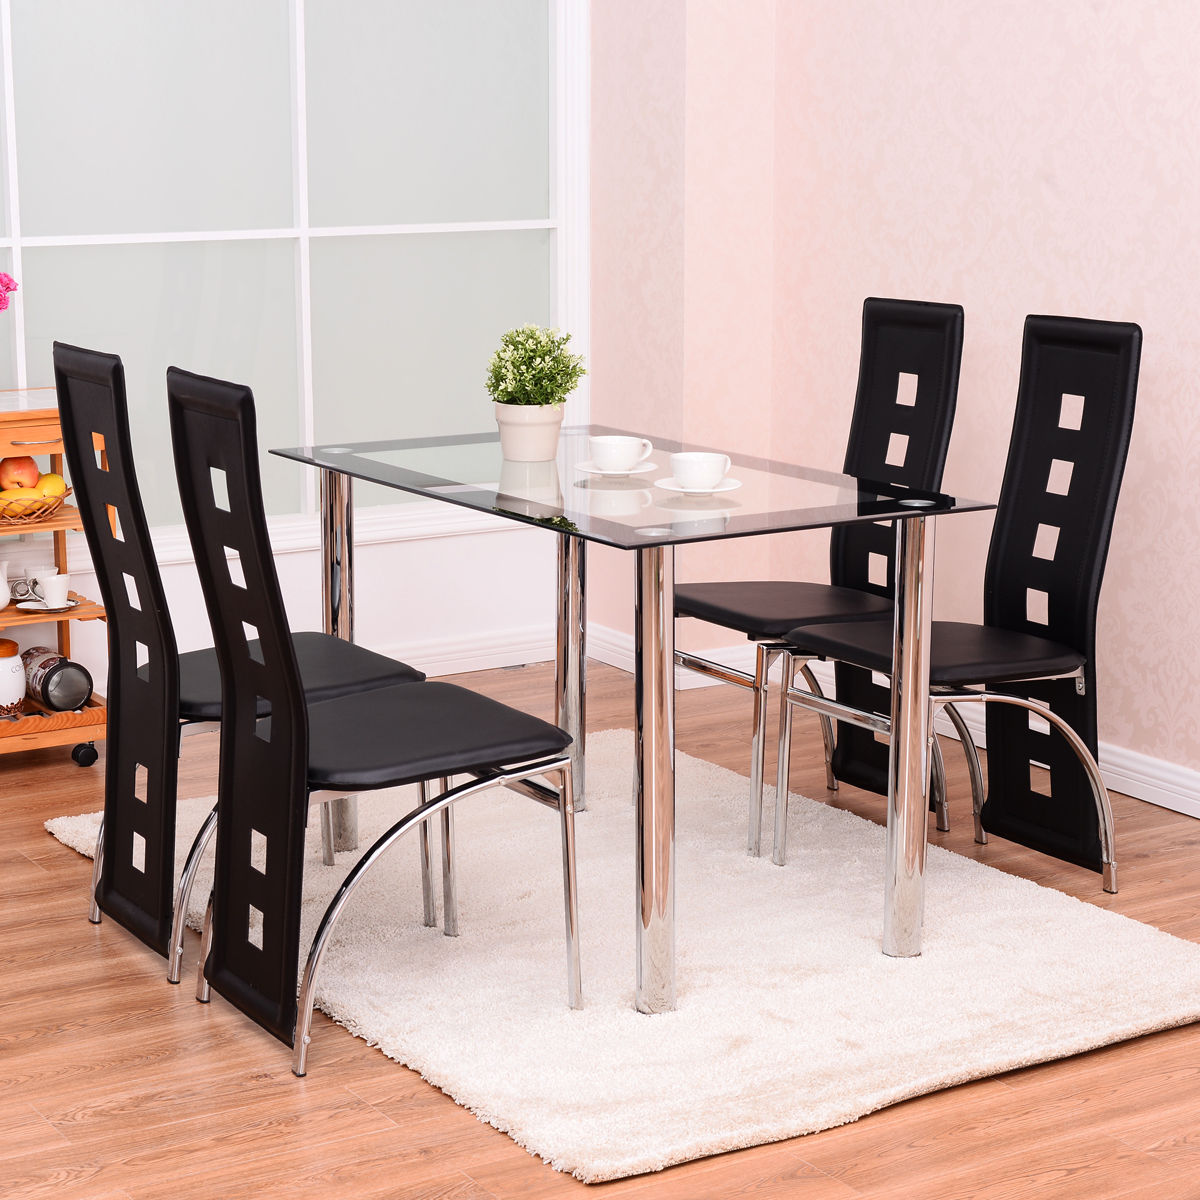 costway 5 piece dining set glass table and 4 chairs home kitchen breakfast furniture costway 5 piece dining set glass table and 4 chairs home kitchen      rh   walmart com